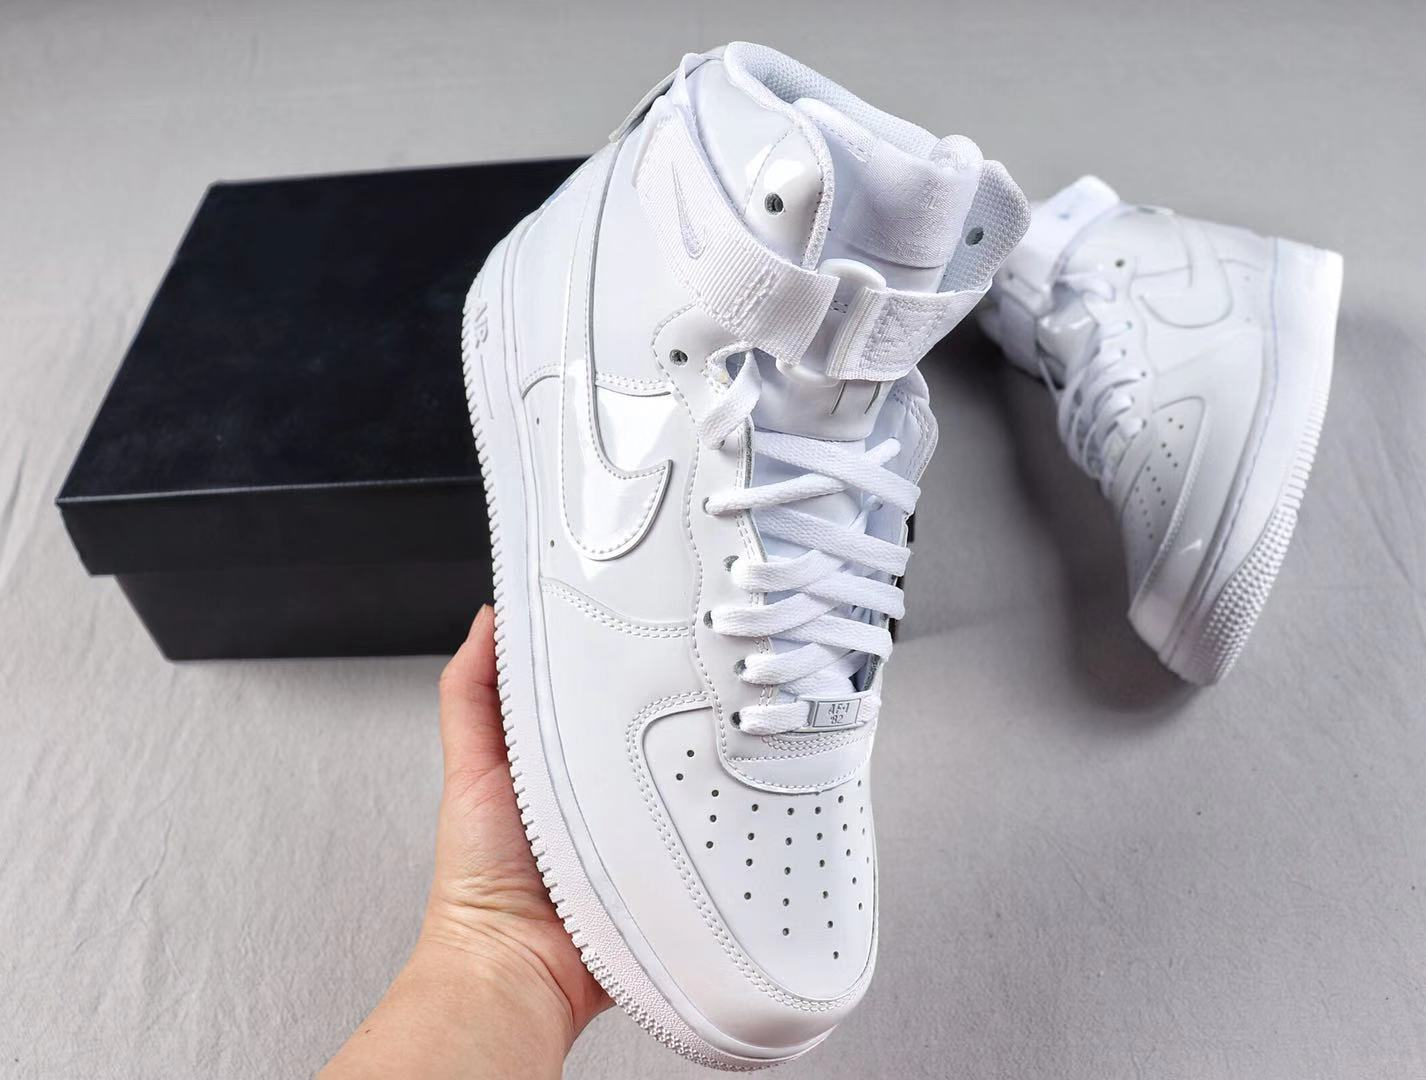 Nike Air Force 1 High QS White/White Sneakers Free Shipping 743546-107